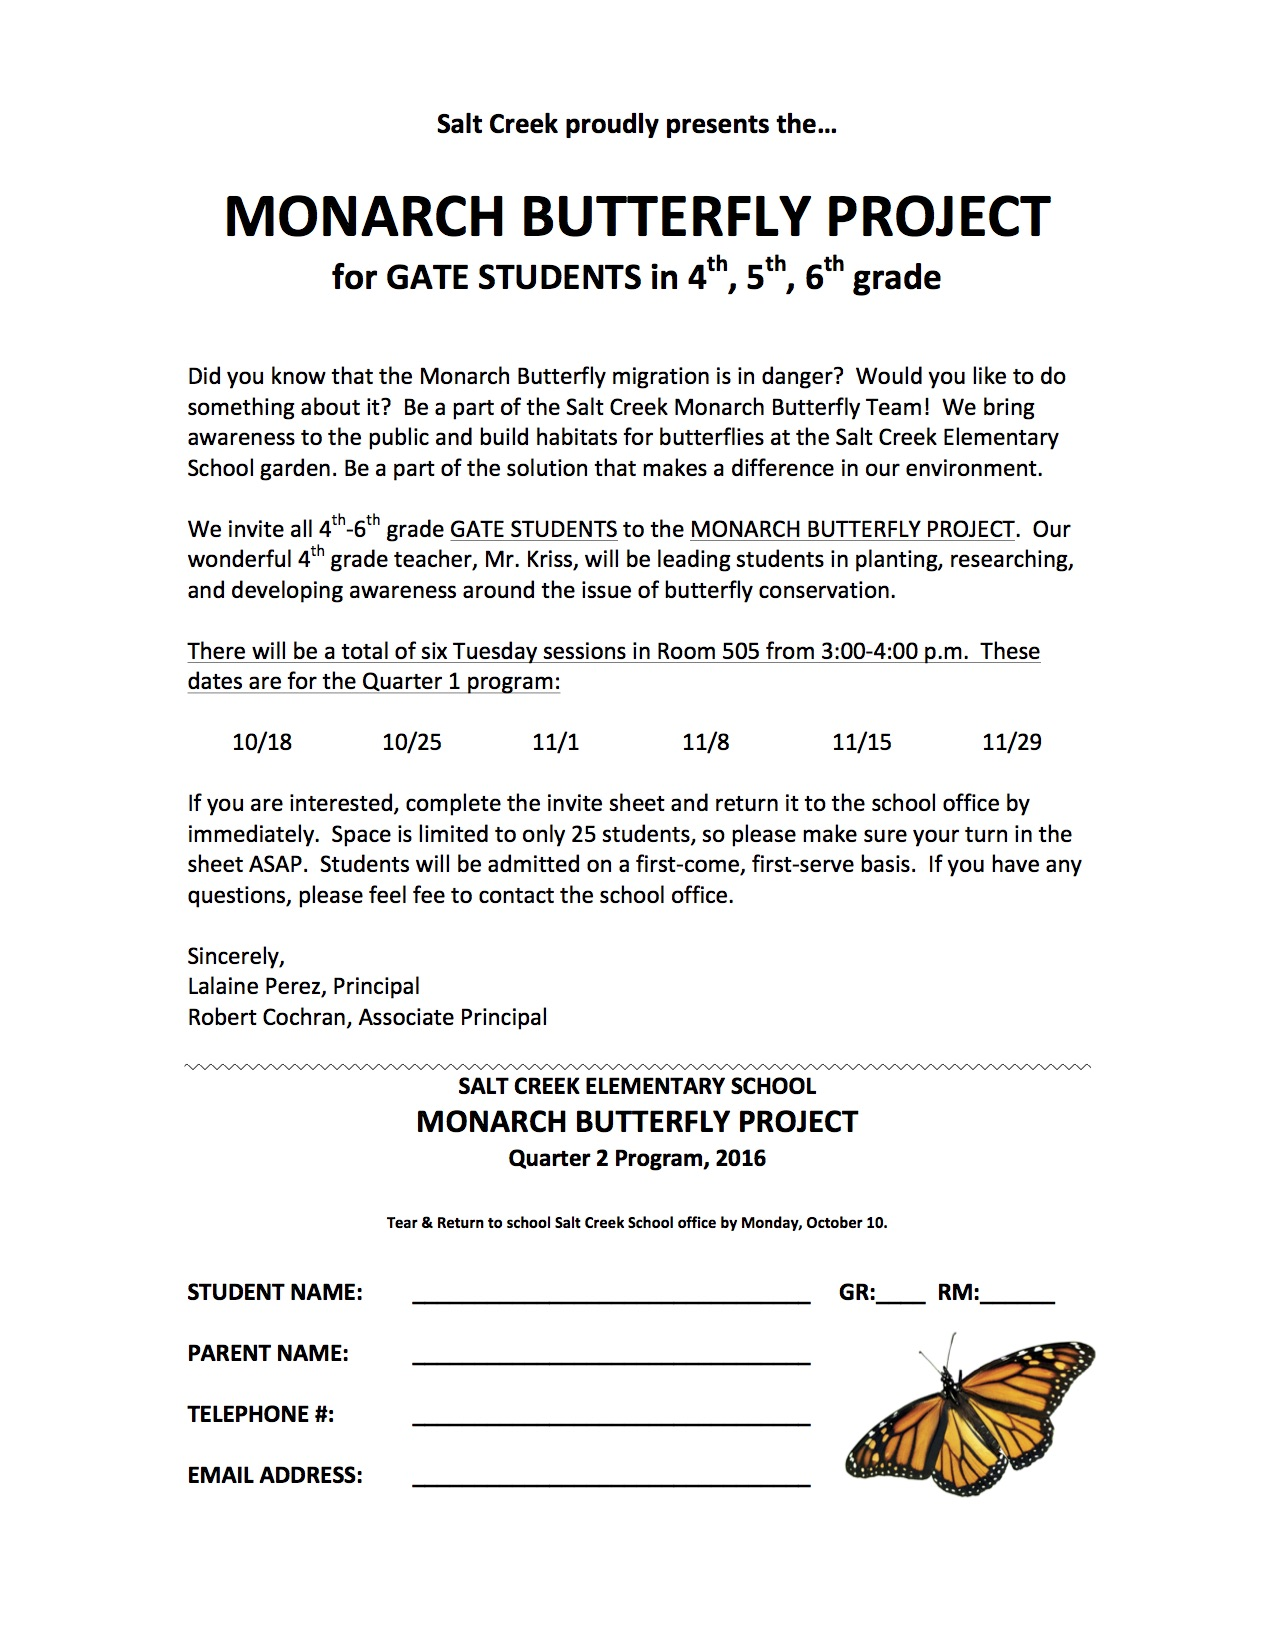 Gate Monarch Butterfly Project For Quarter 2